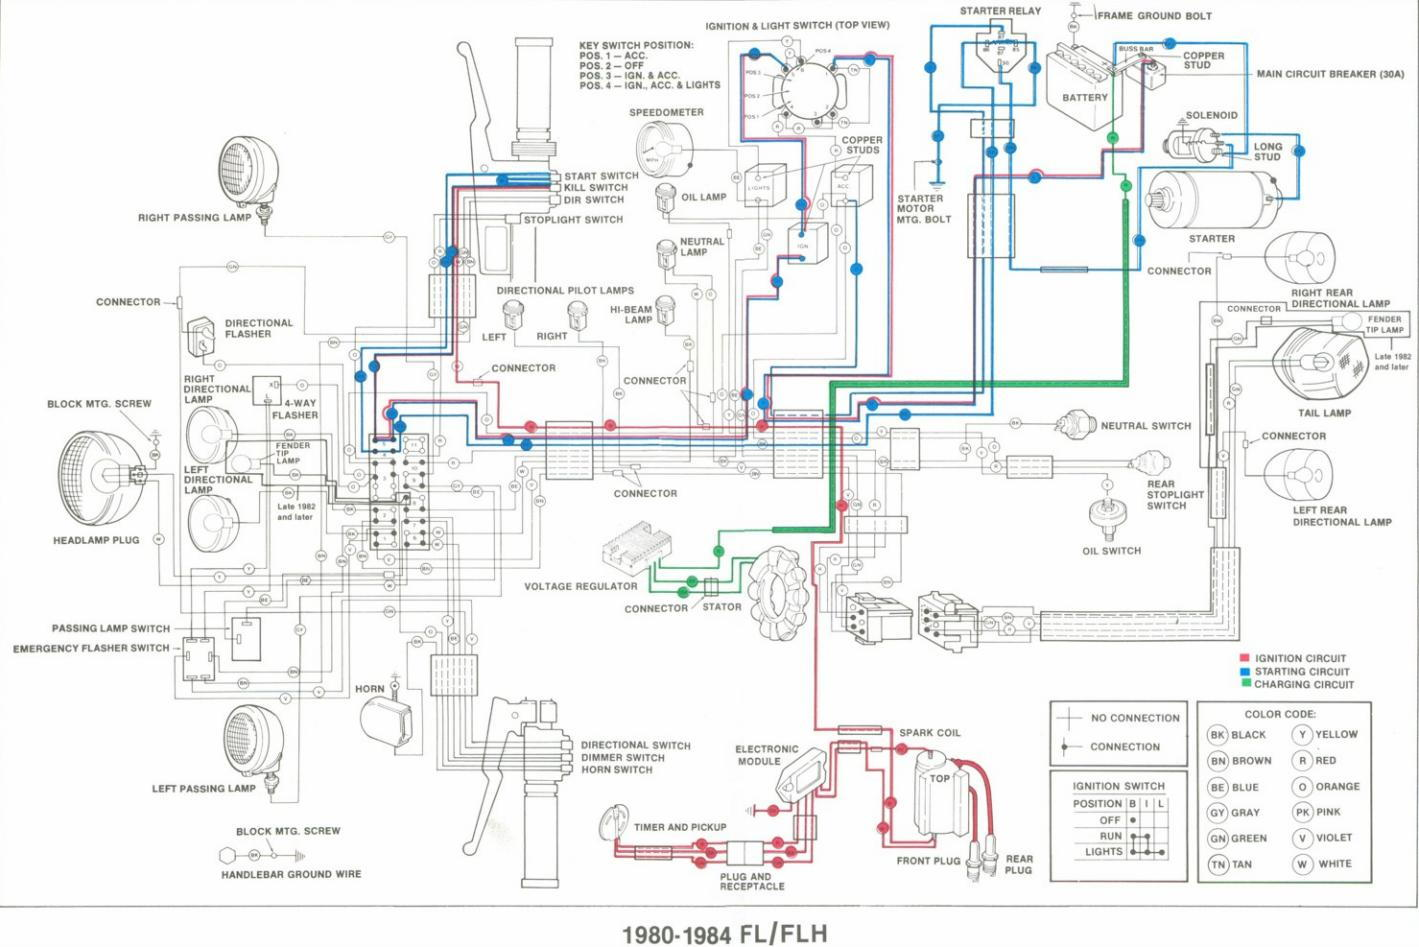 1984 Harley Wiring Diagram - Wiring Diagrams Site self-double -  self-double.fioricolori.it [ 947 x 1419 Pixel ]